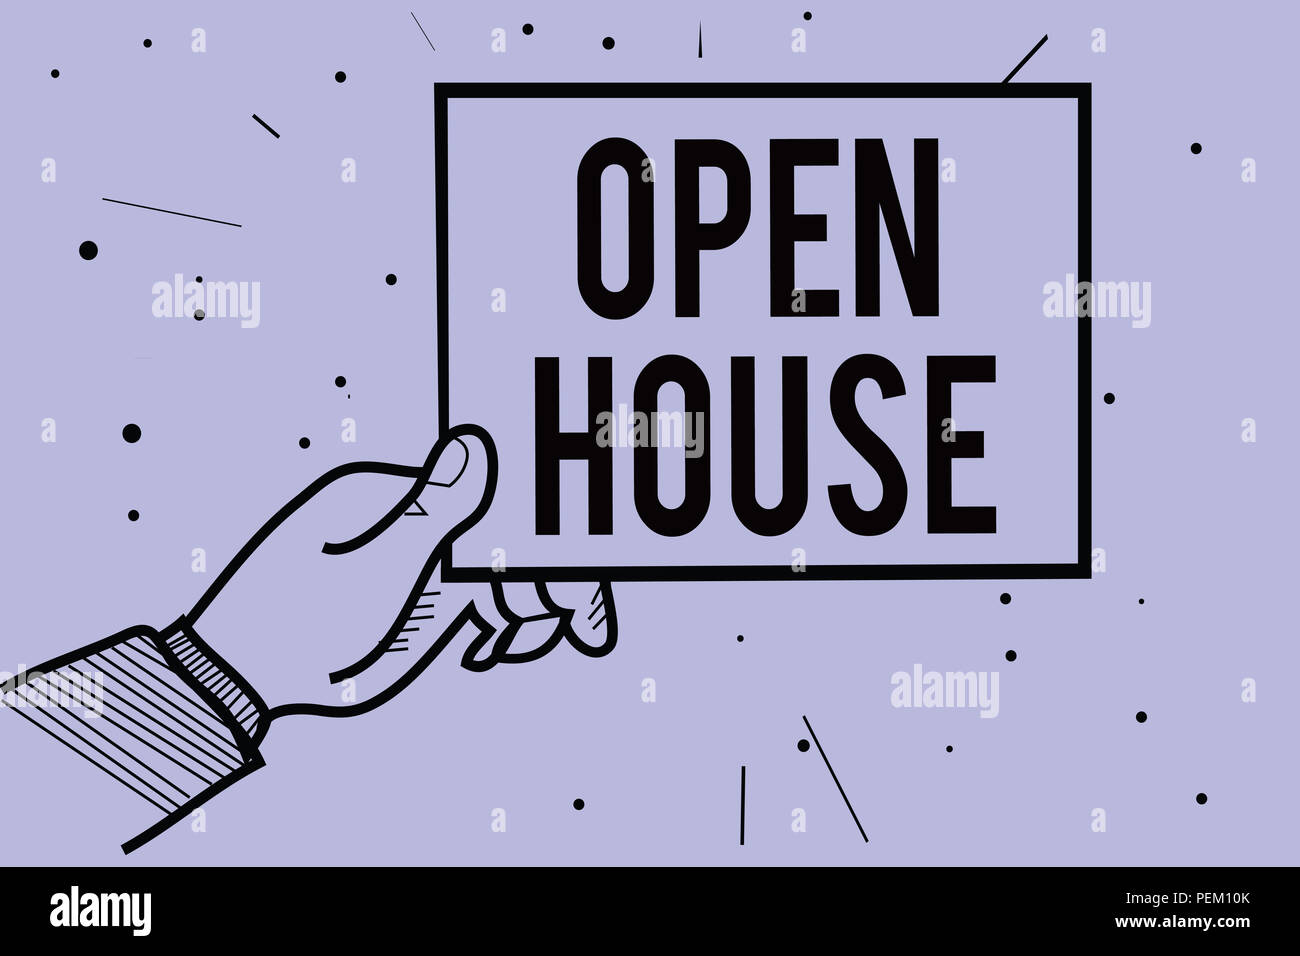 Sell house home meaning property stock photos sell house home handwriting text writing open house concept meaning you can come whatever whenever want make yourself solutioingenieria Images